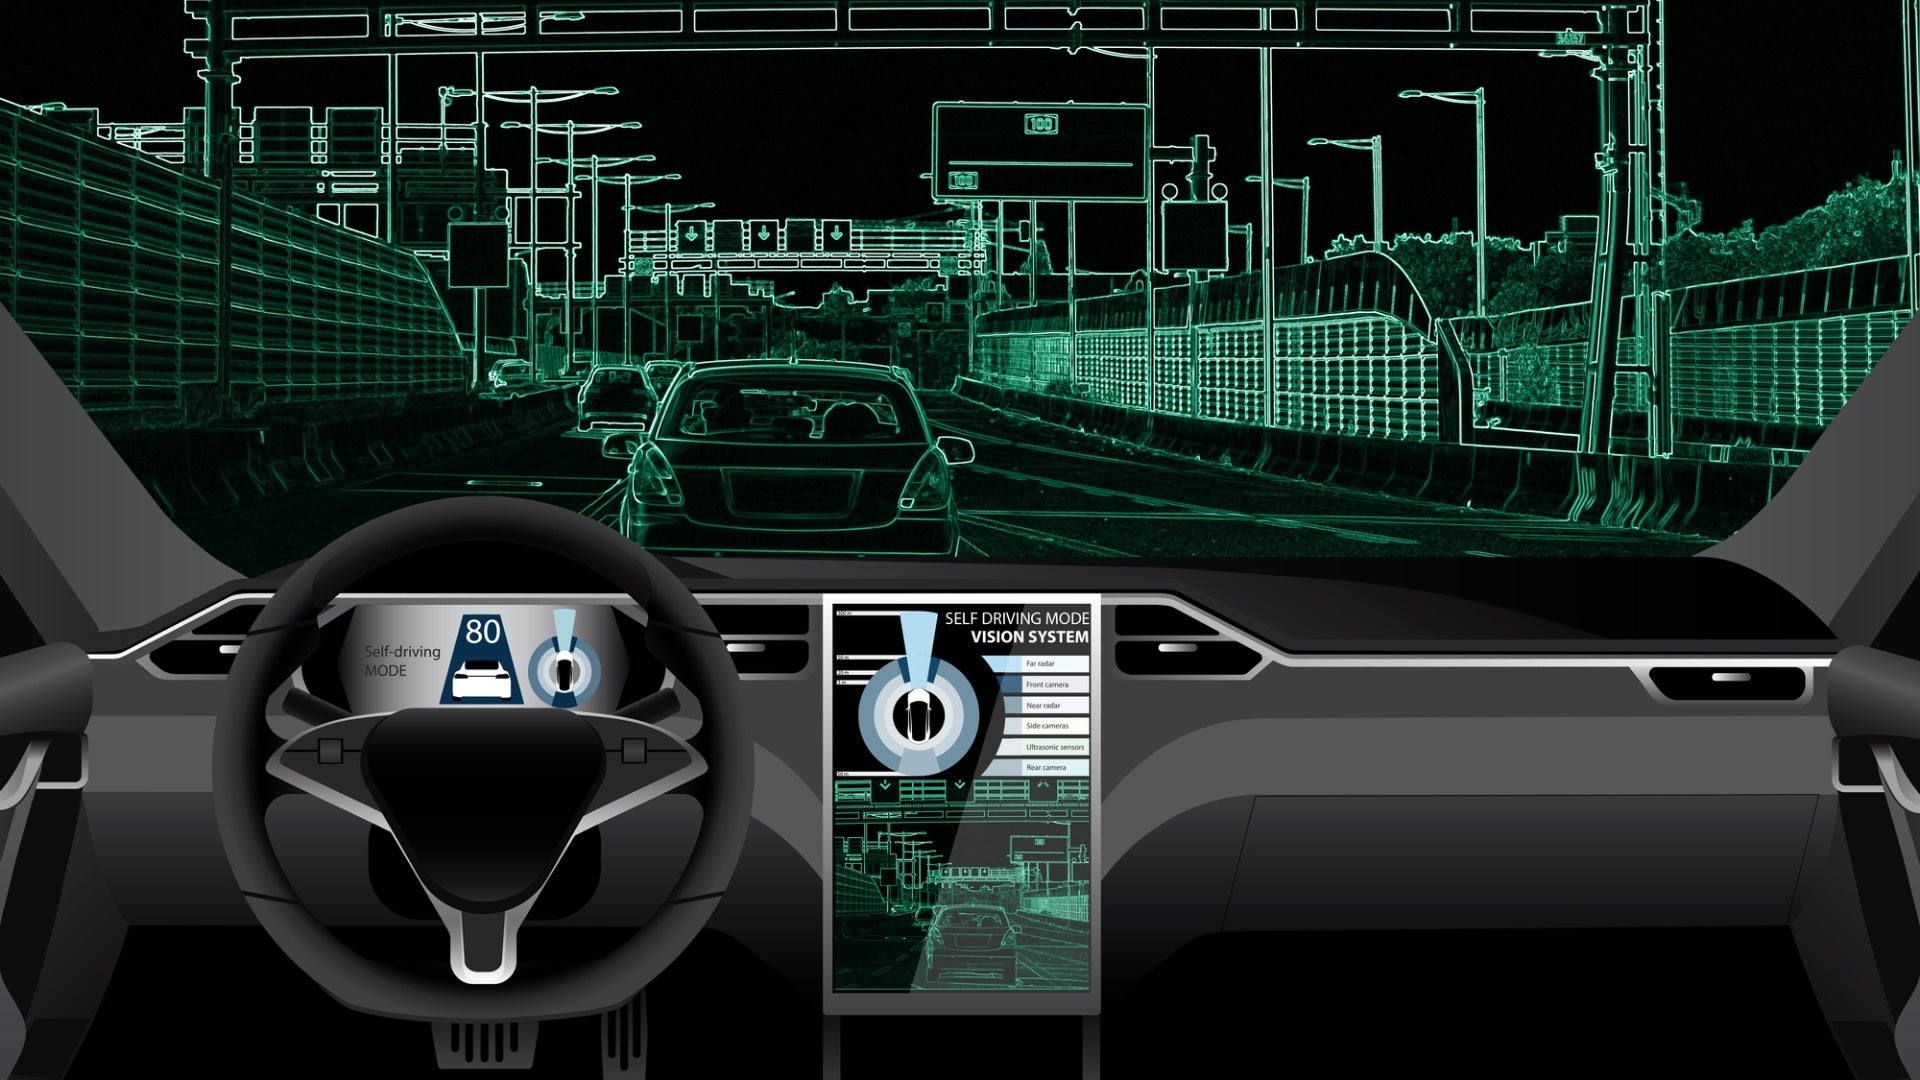 Can I Buy a Self-Driving Car